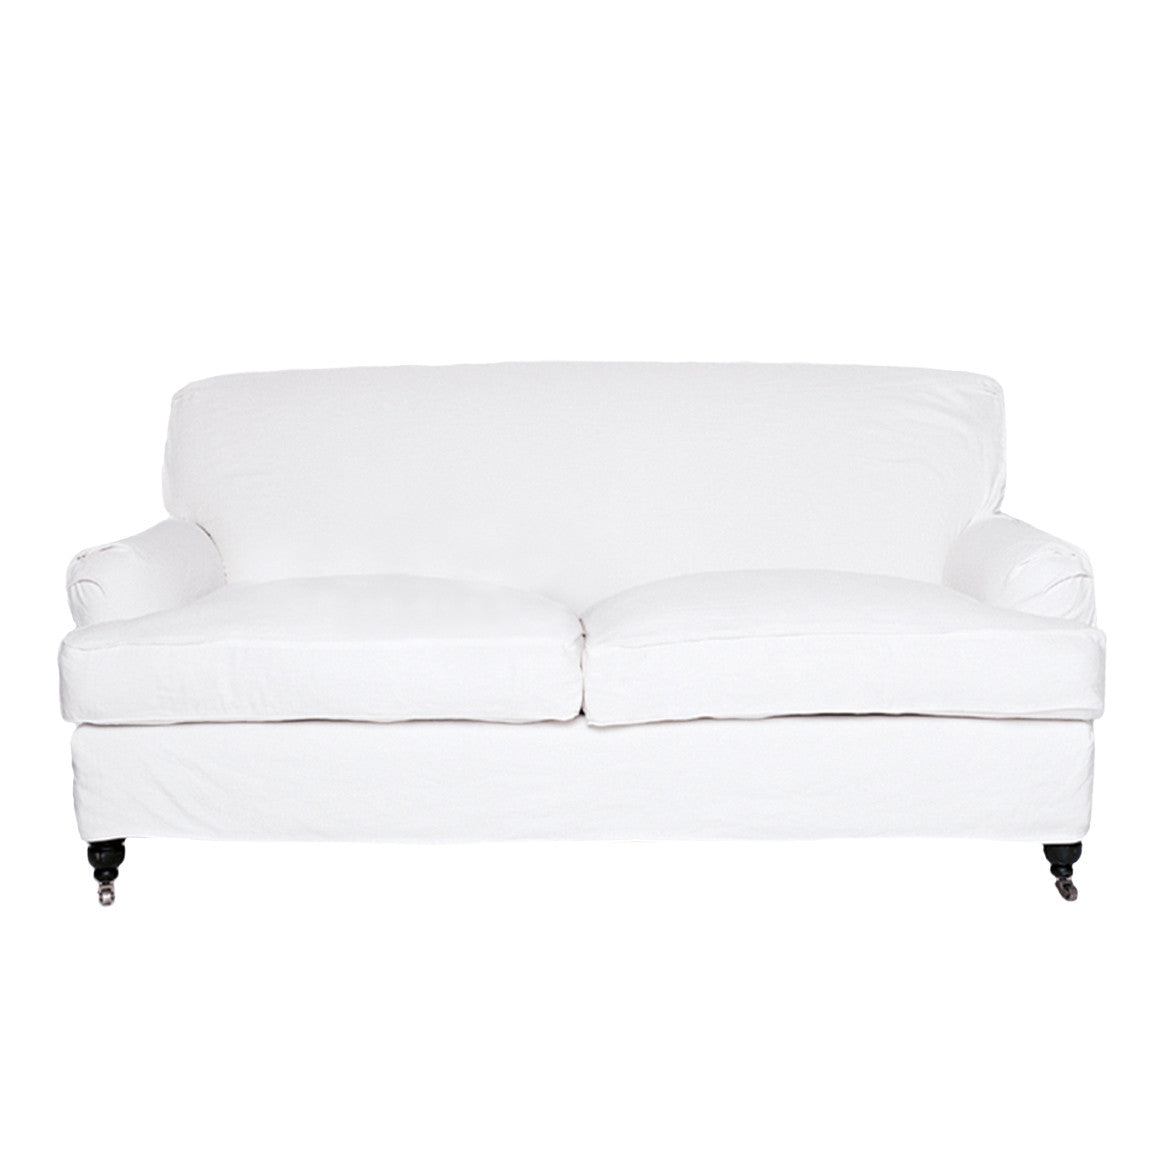 Beecroft Sofa